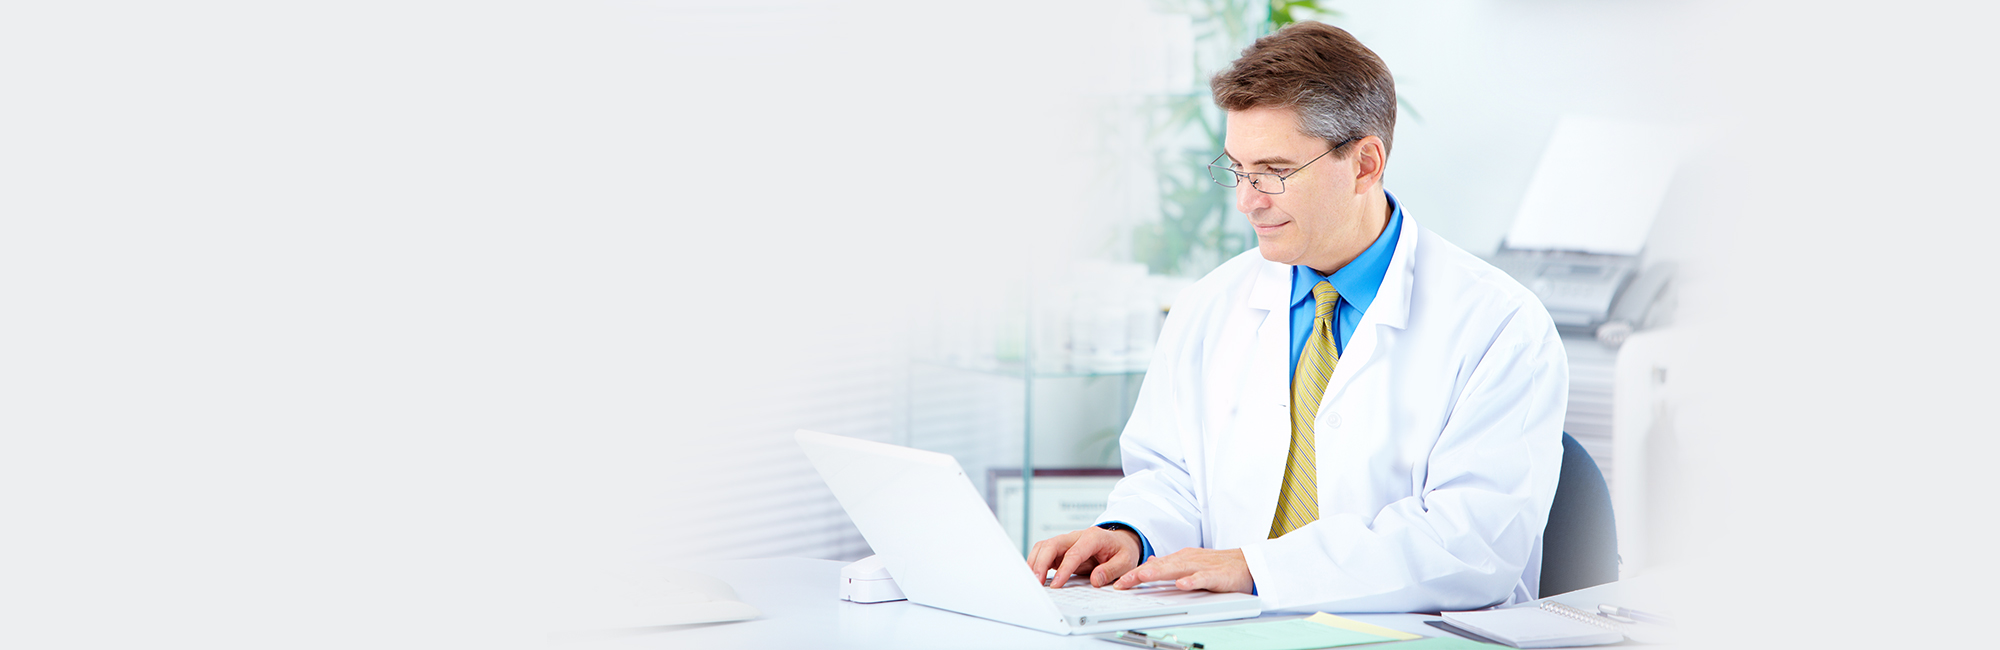 doctor using dental notes software on computer